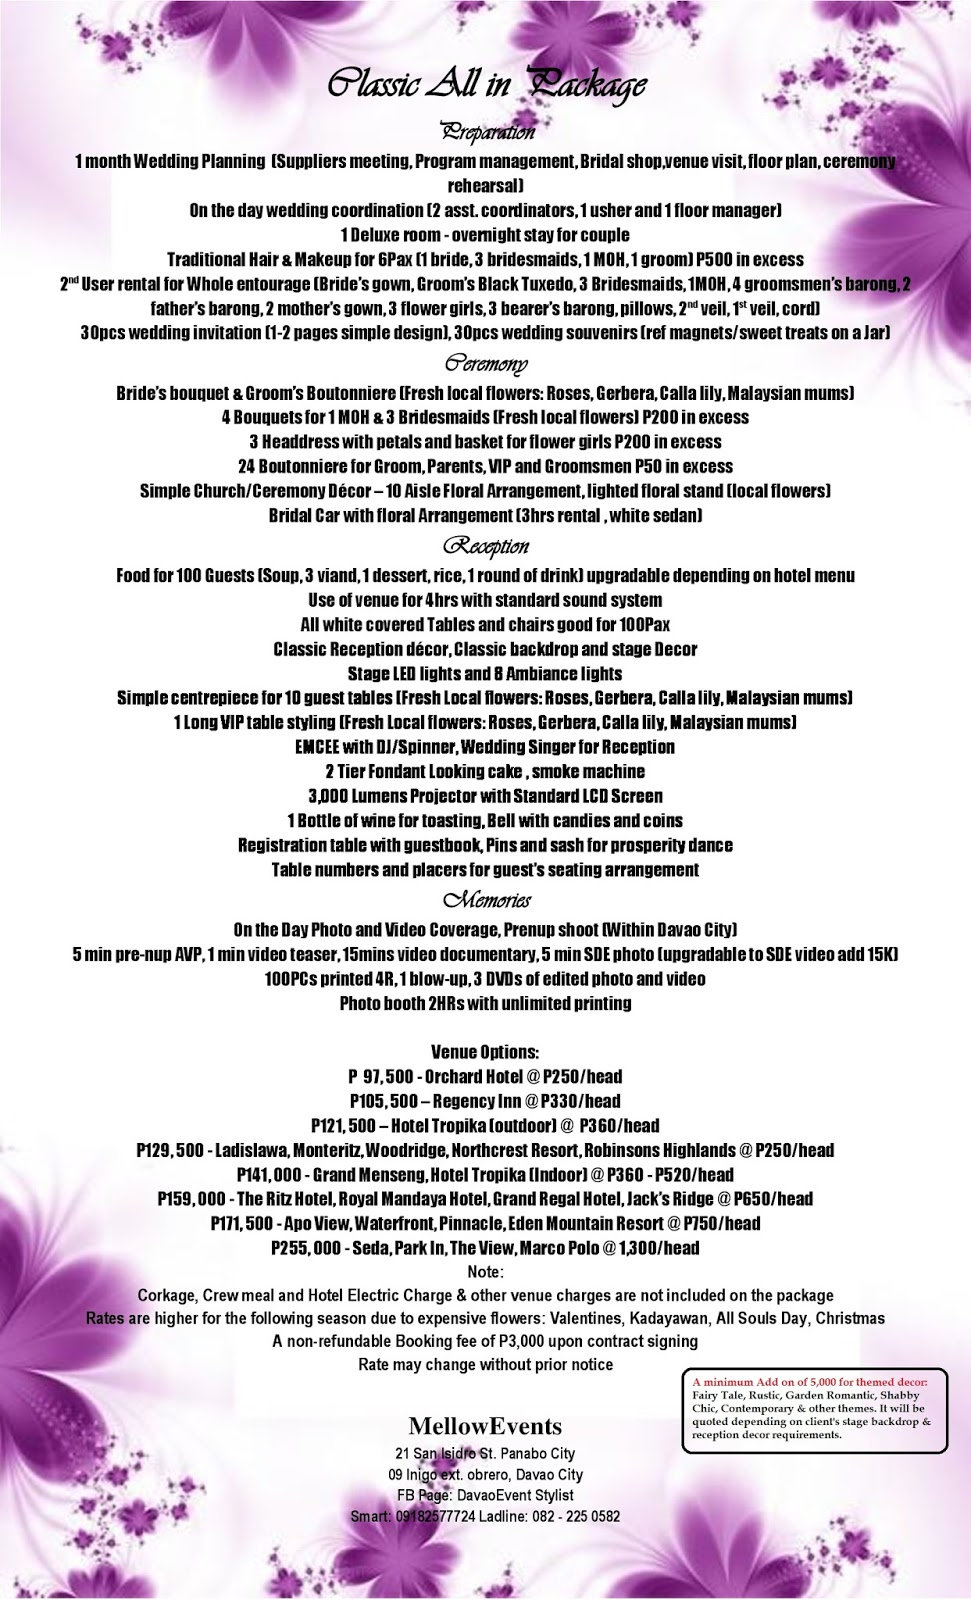 Complete Wedding Package Mellow Flowers And Events